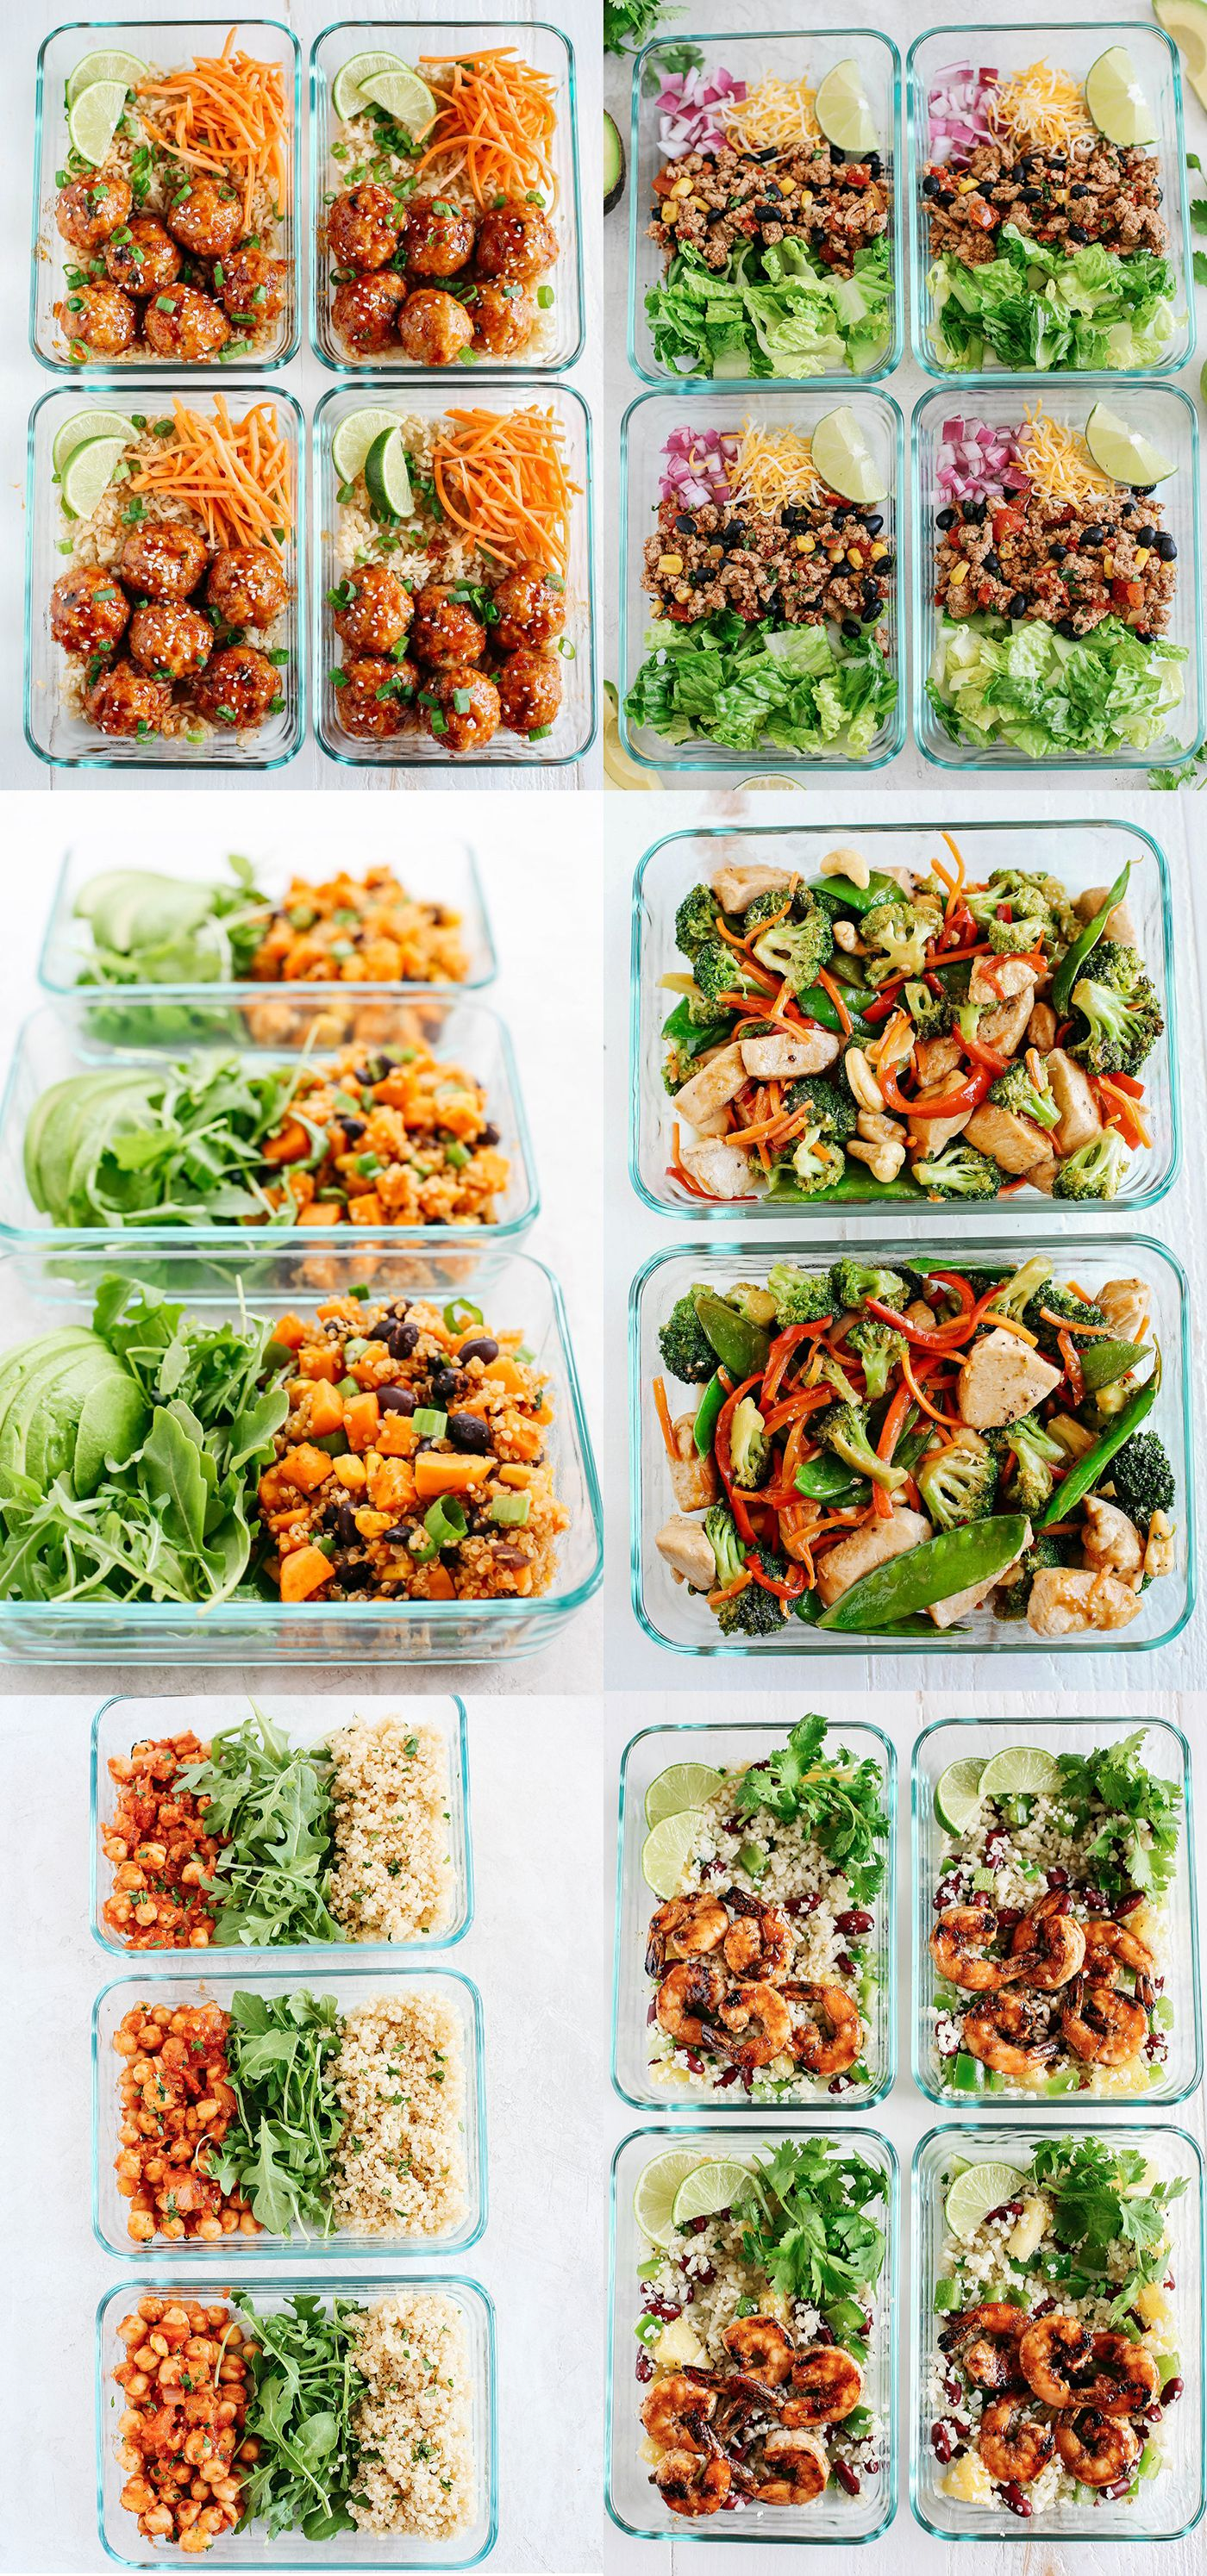 Photo of 10 Easy Meal Prep Recipes – Eat Yourself Skinny